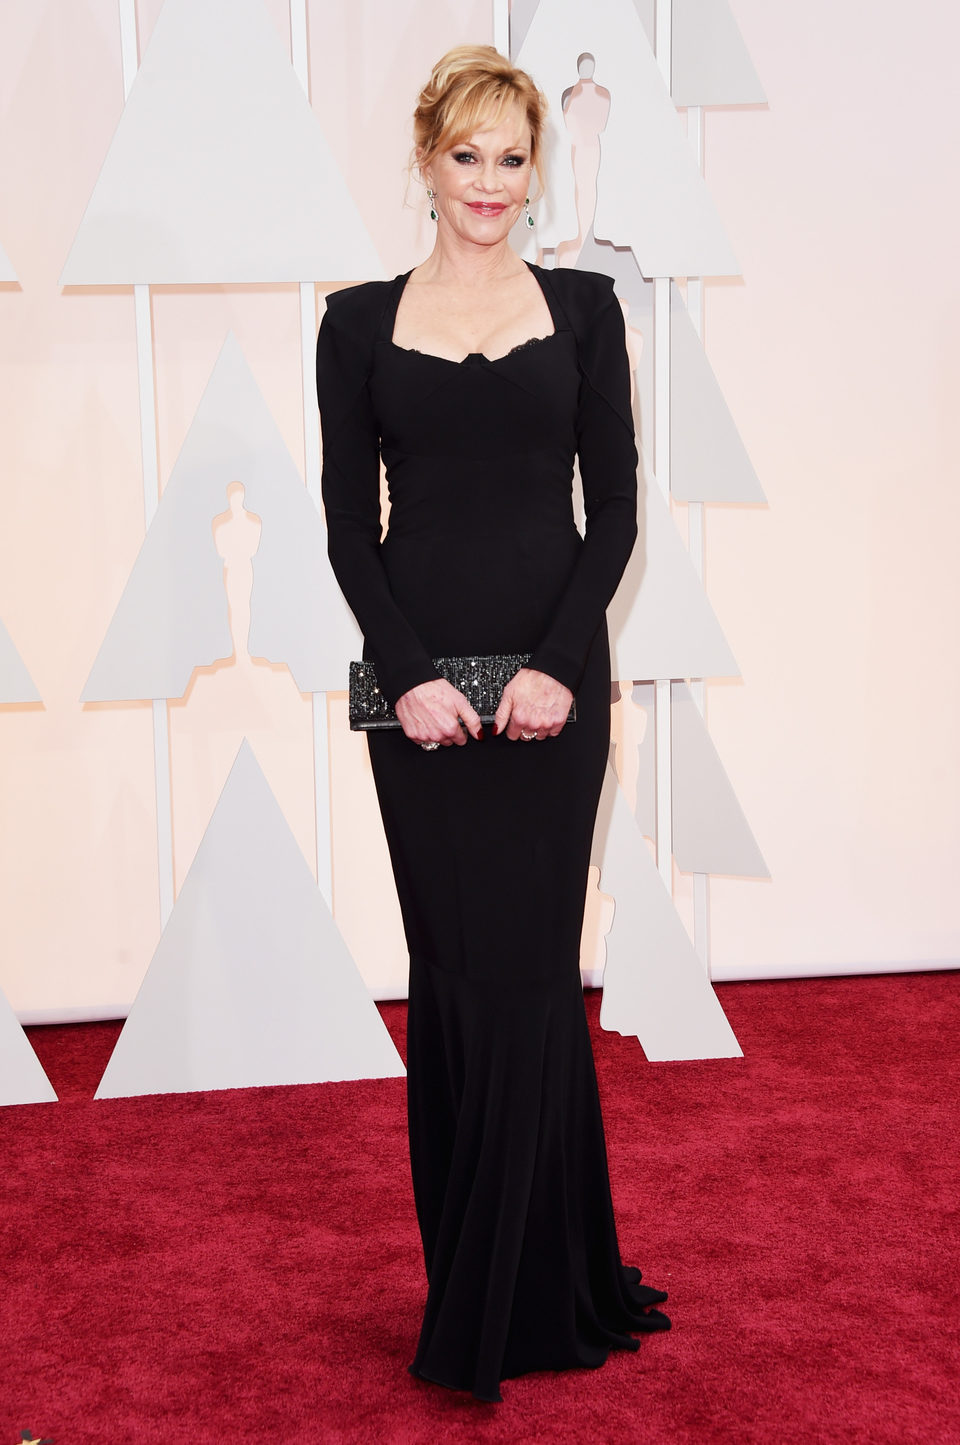 Melanie Griffith pose at the red carpet of the Oscar 2015